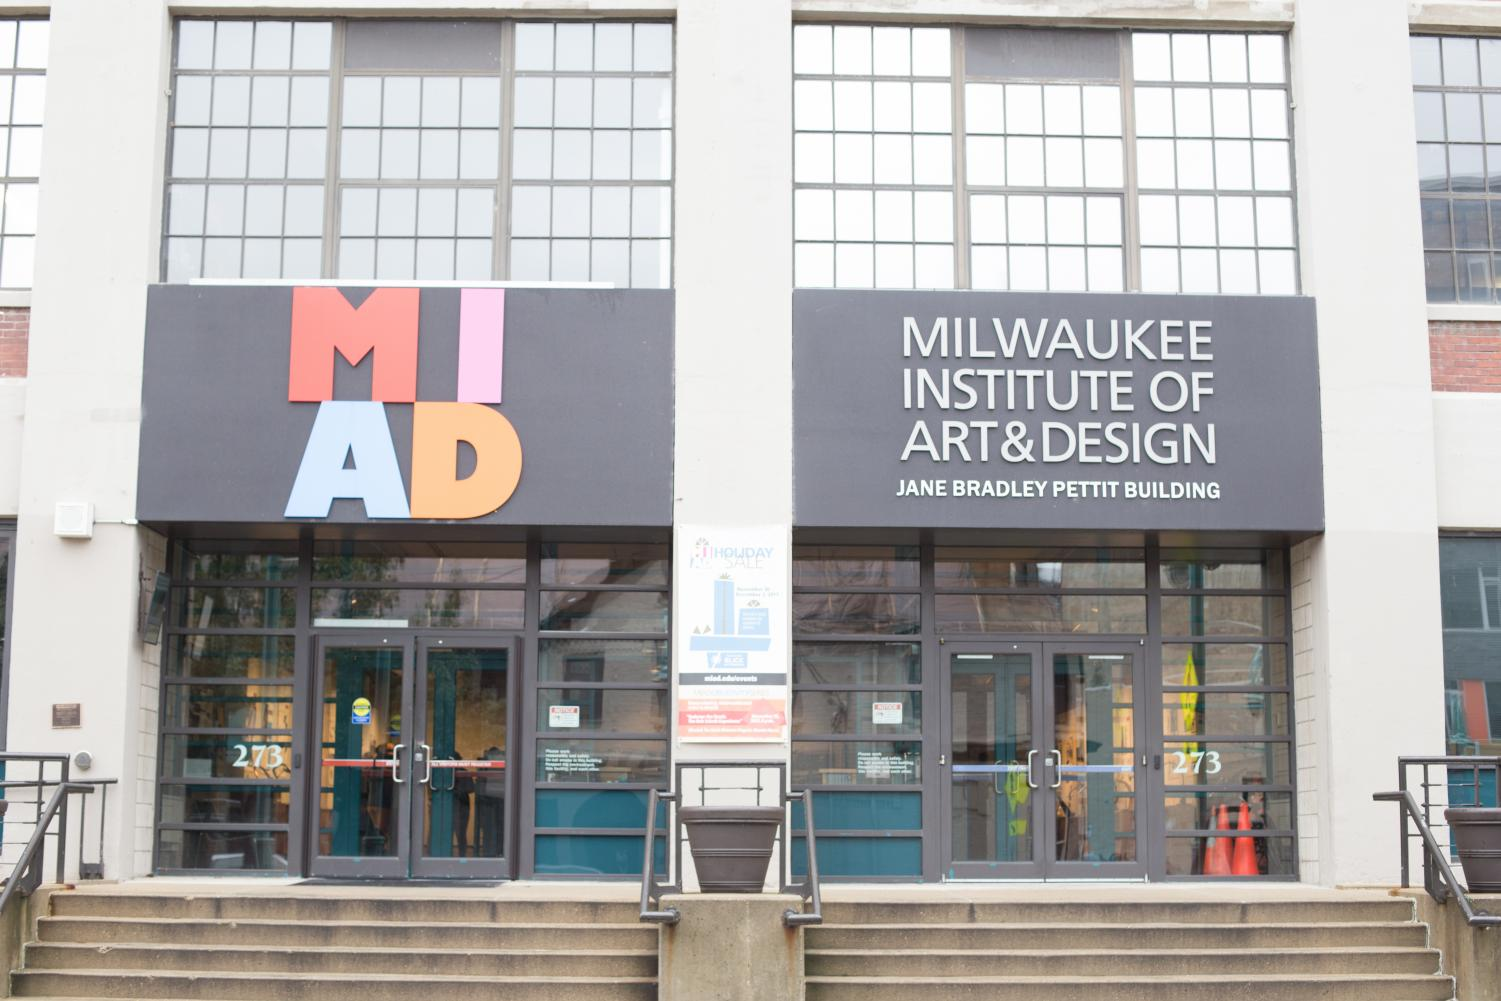 The Haggerty Museum of Art Student Advisory Committee was formed last summer and planned the mash-up to spark interest in Marquette's collaboration with MIAD. The university offers graphic design and studio art minors which allows students to take MIAD classes alongside their regular classes.